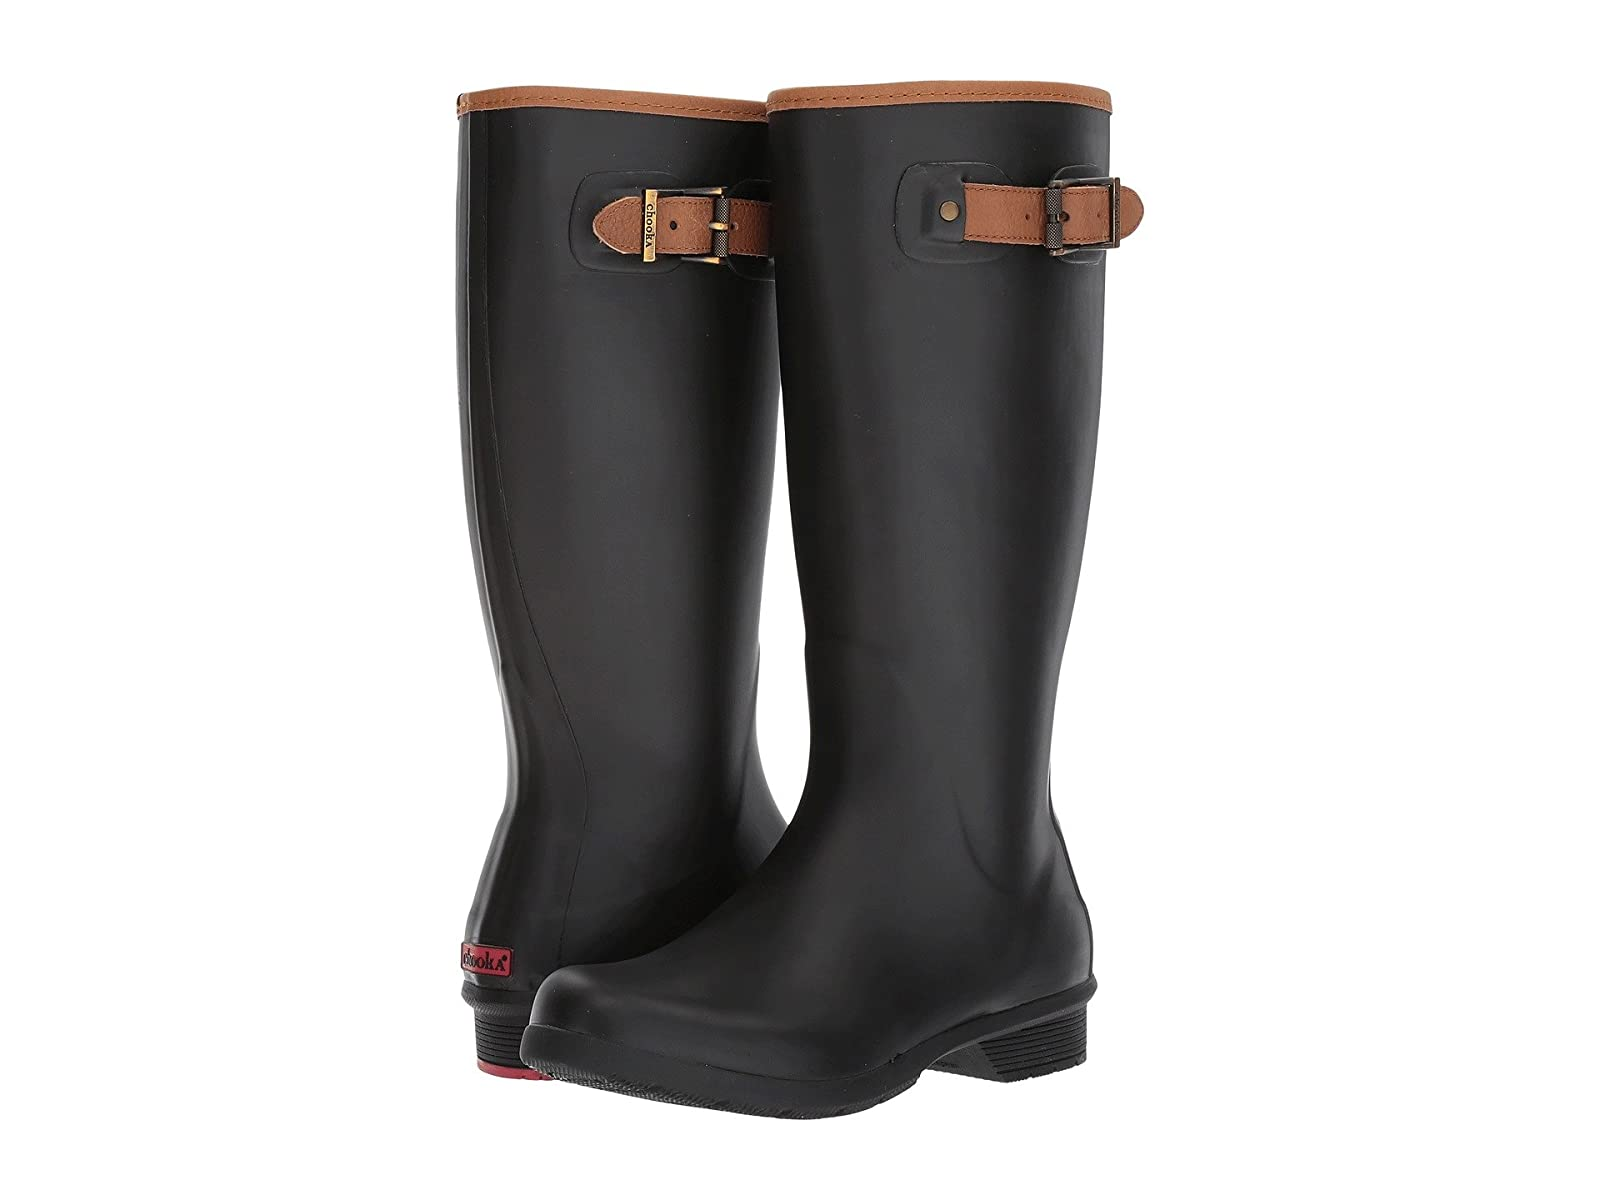 Chooka City Solid Tall BootSelling fashionable and eye-catching shoes